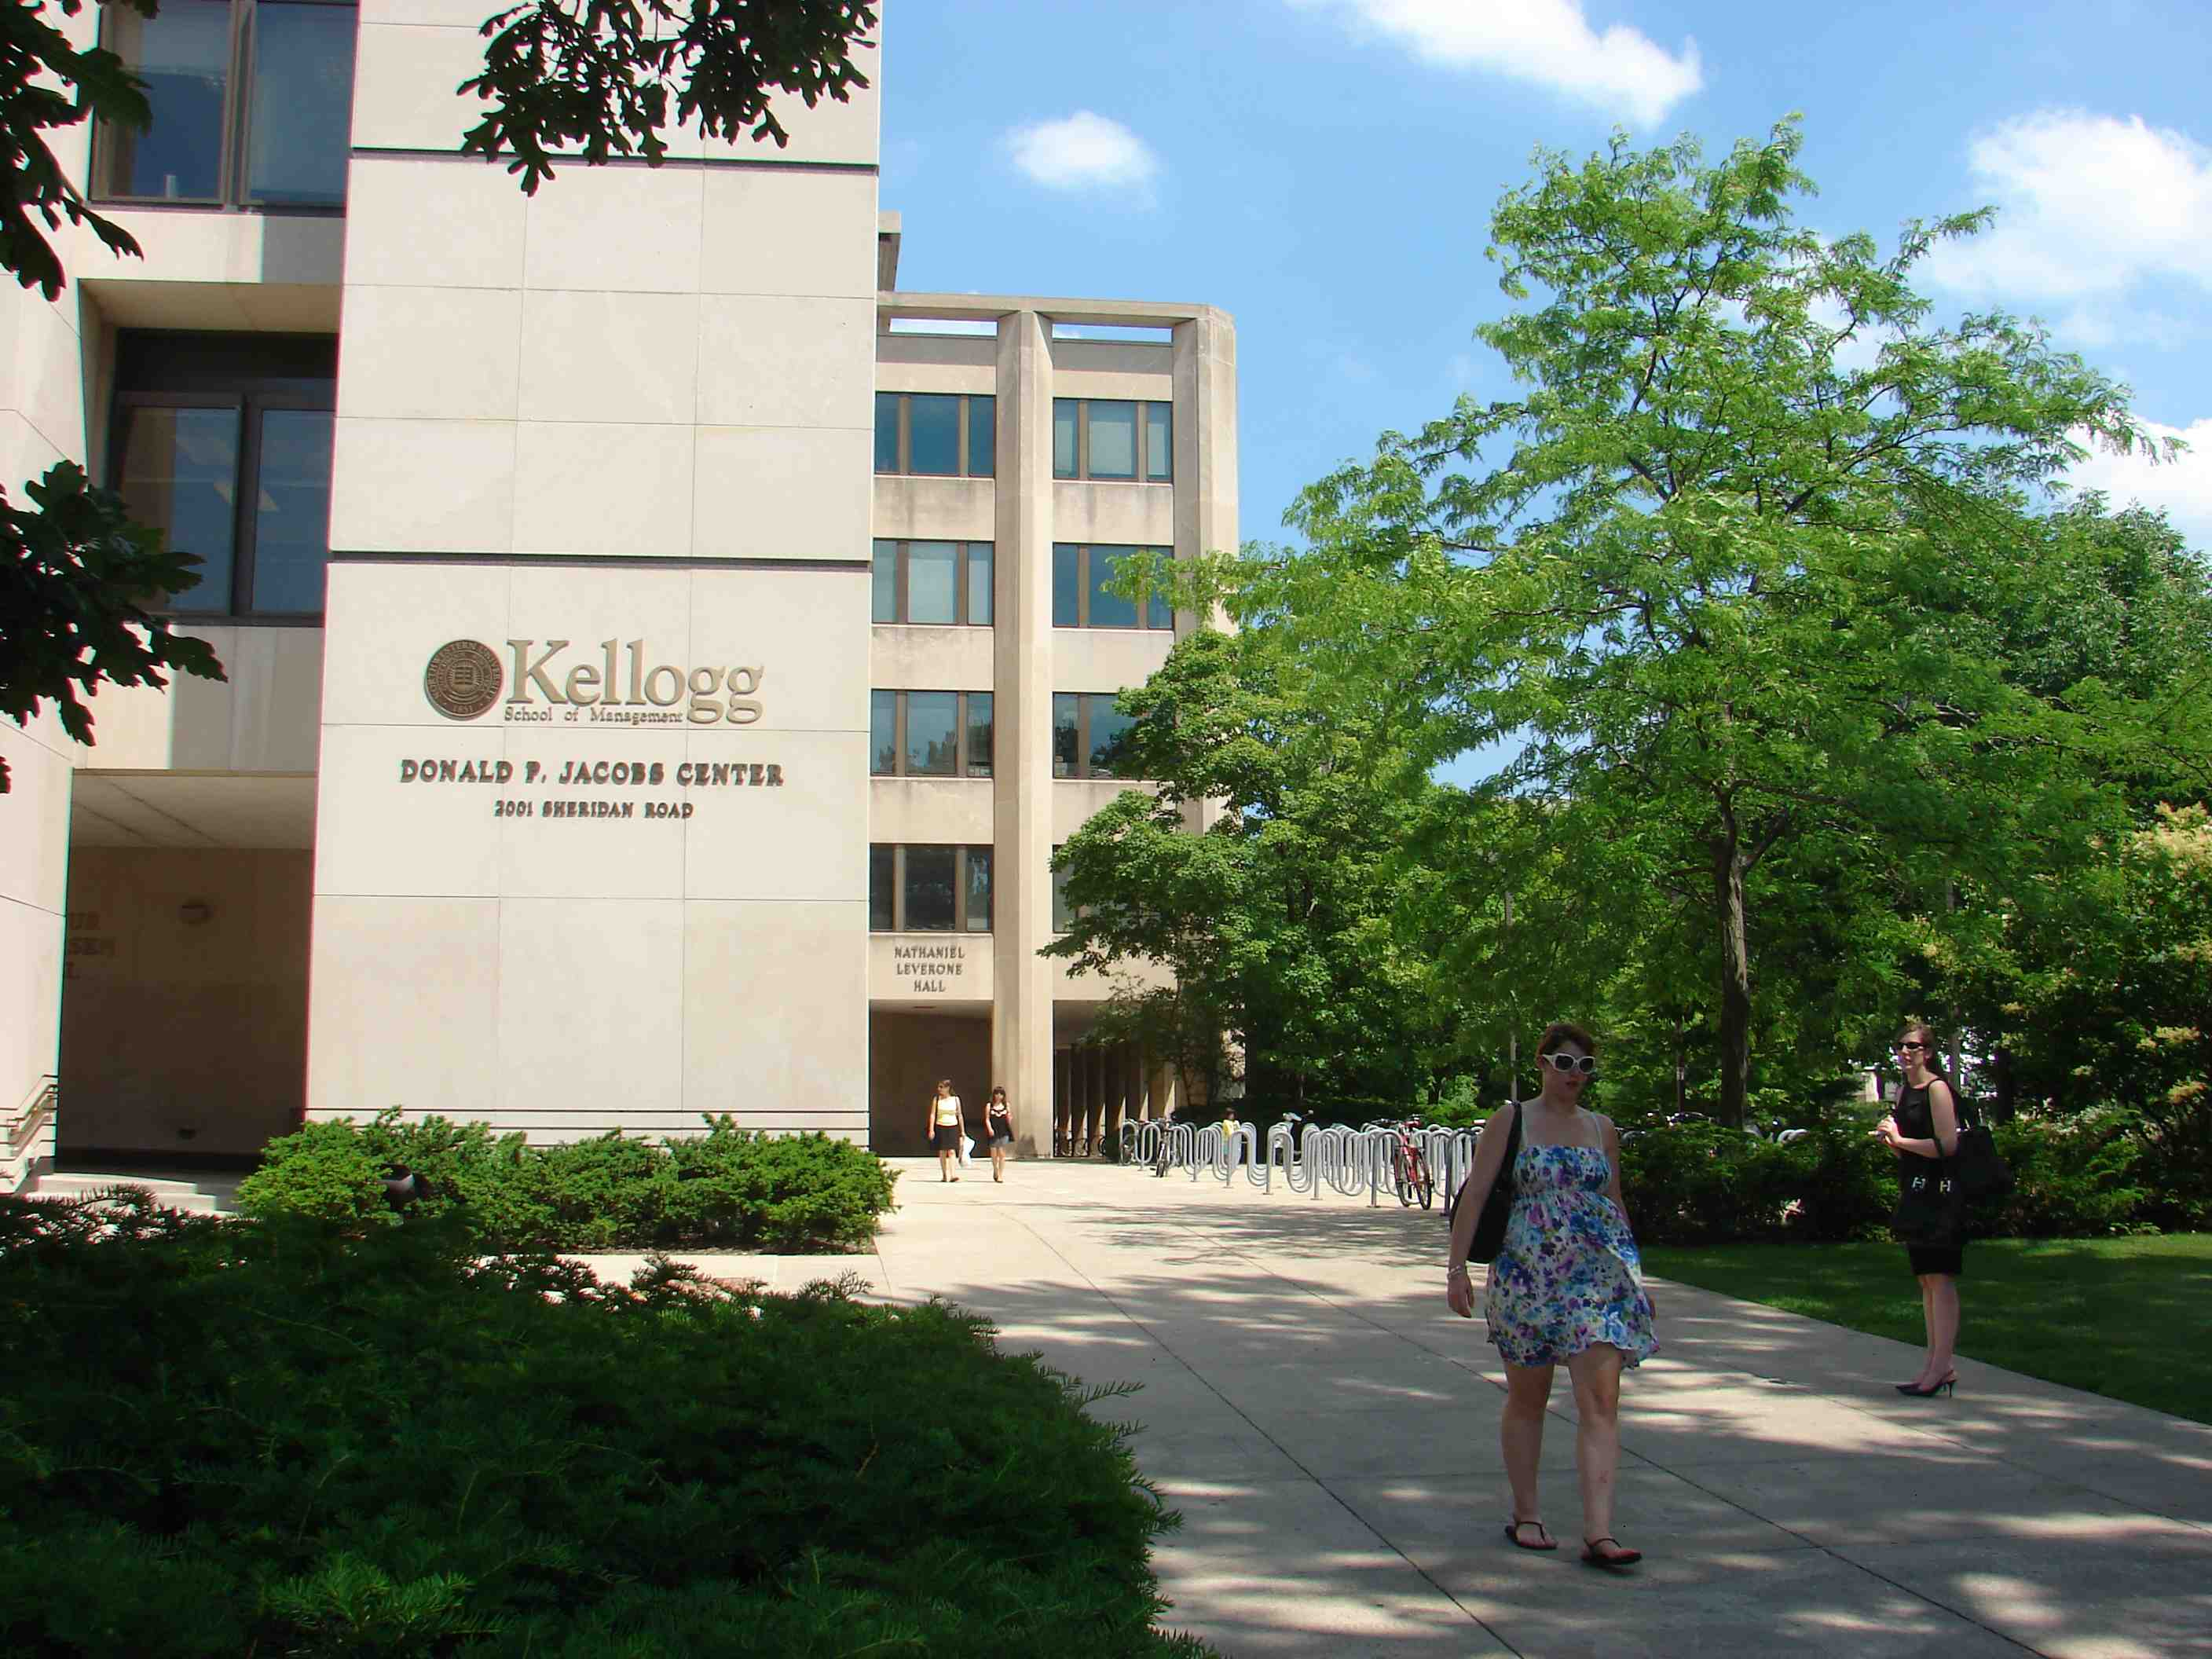 Northwestern Univeristy's Kellogg School of Management